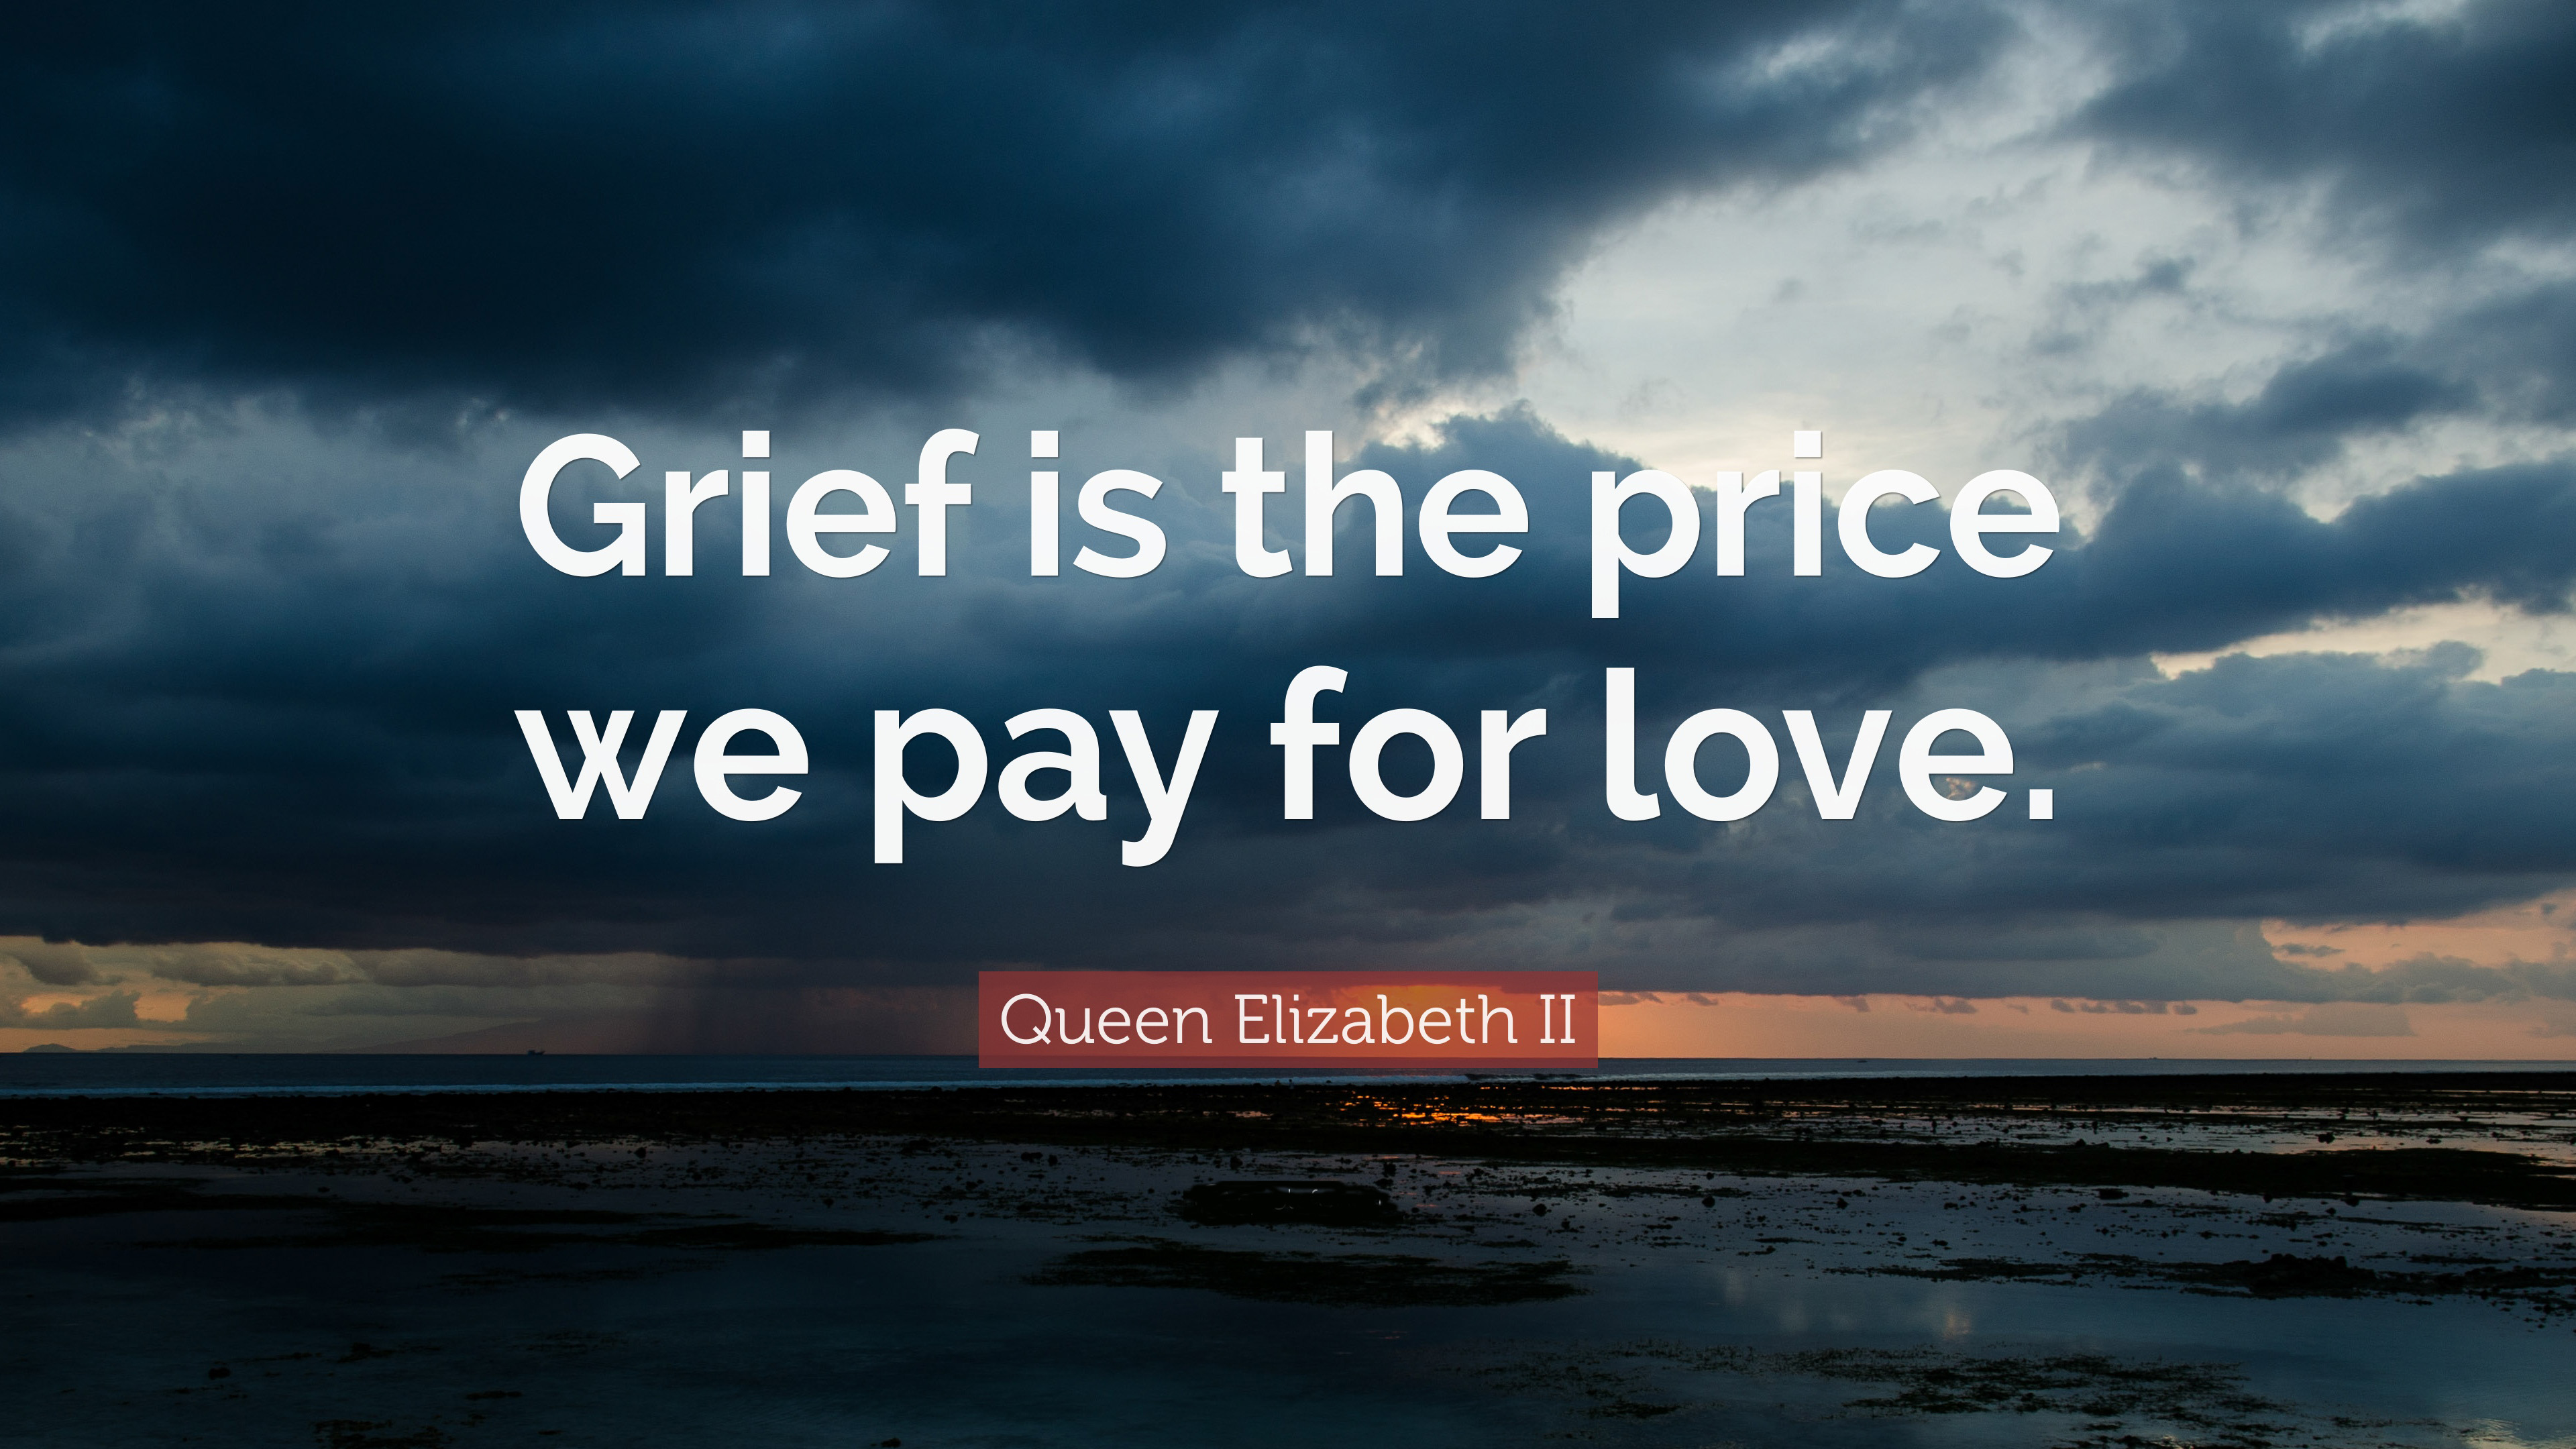 422024-Queen-Elizabeth-II-Quote-Grief-is-the-price-we-pay-for-love